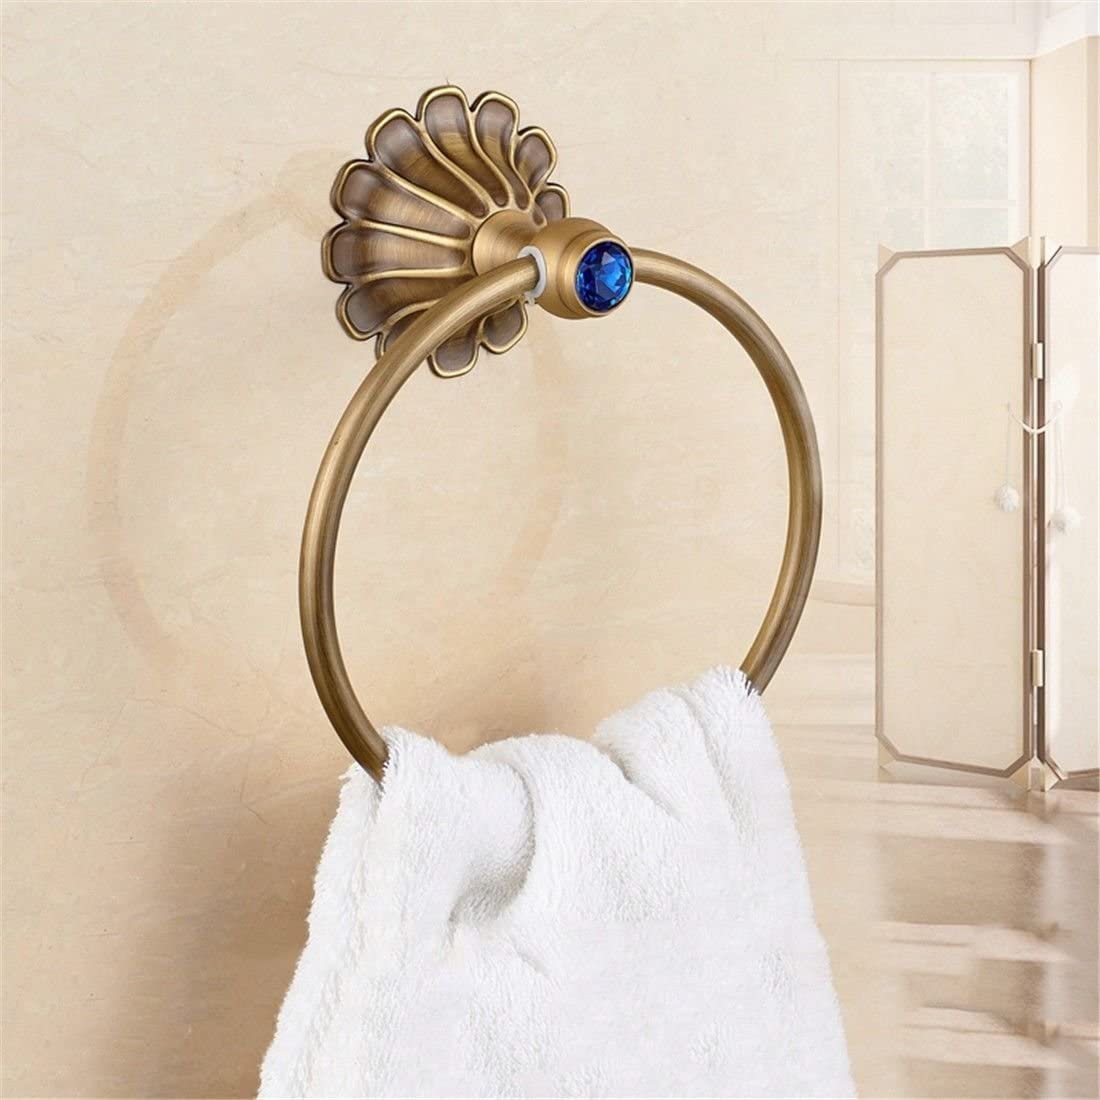 AiRobin-Continental Antique Brass Retro Wall Mounted Towel Ring Bathroom Accessory